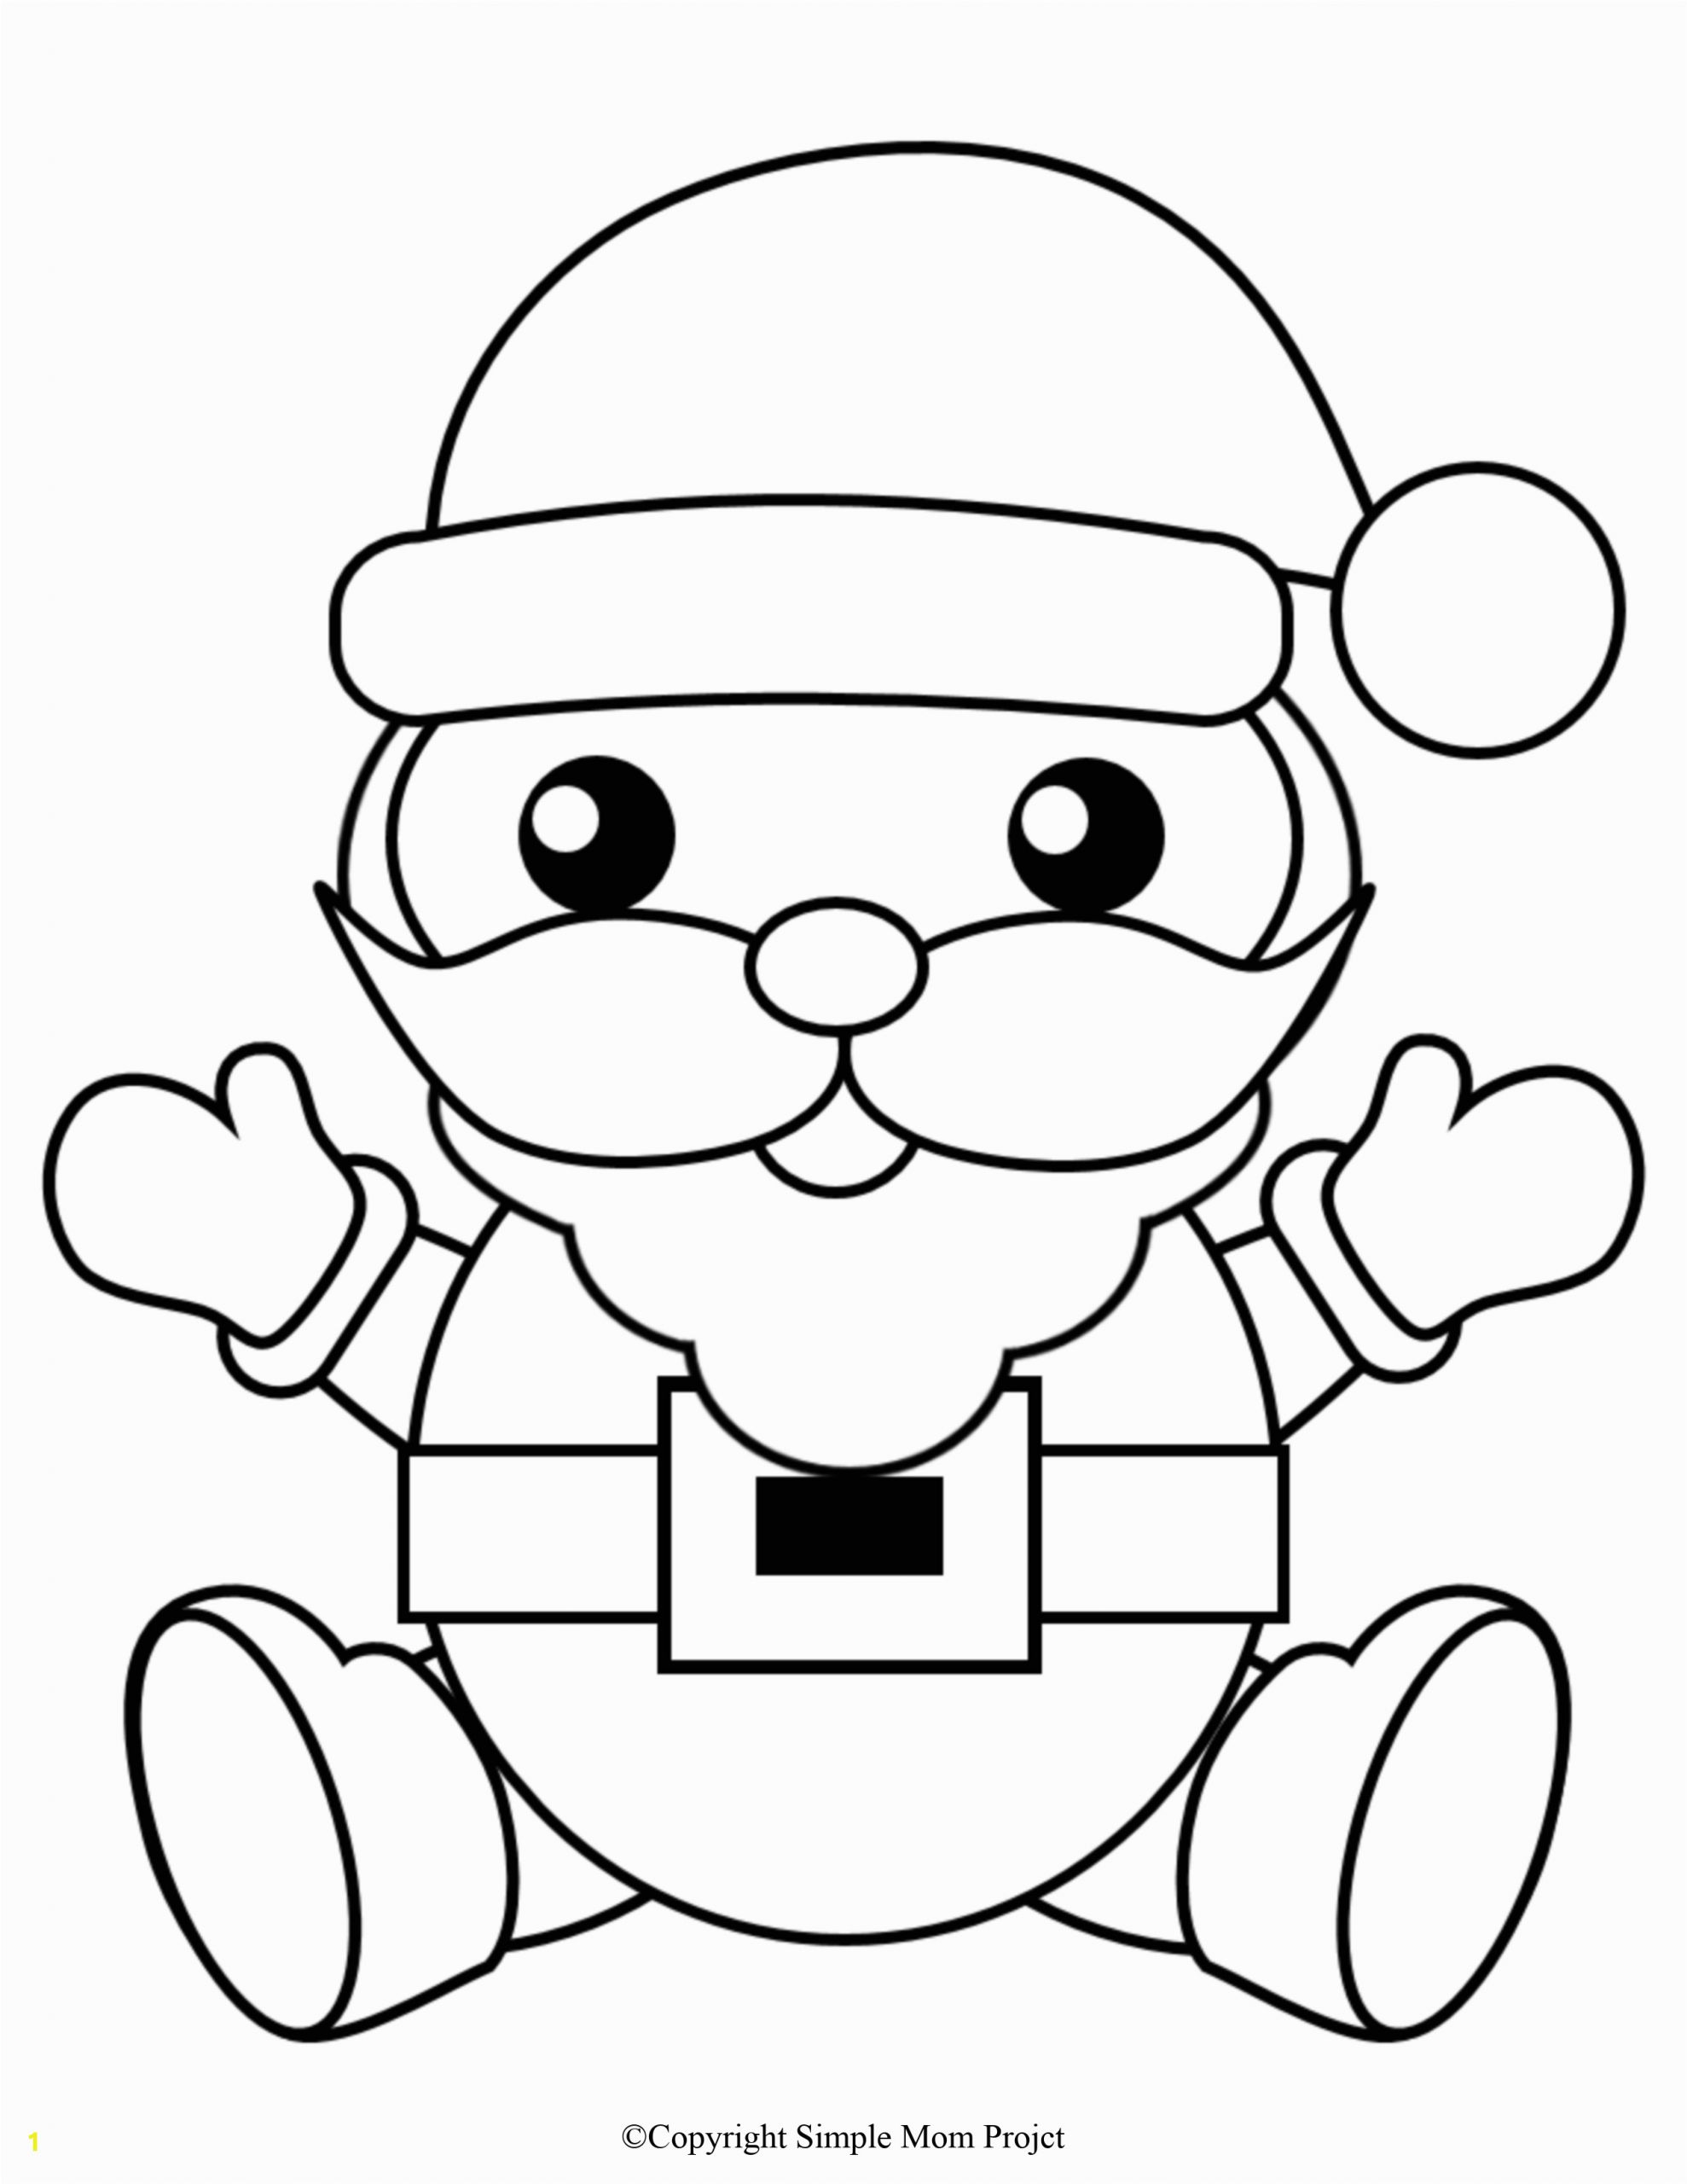 Childrens Christmas Coloring Pages Free Printable Christmas Coloring Sheets for Kids and Adults